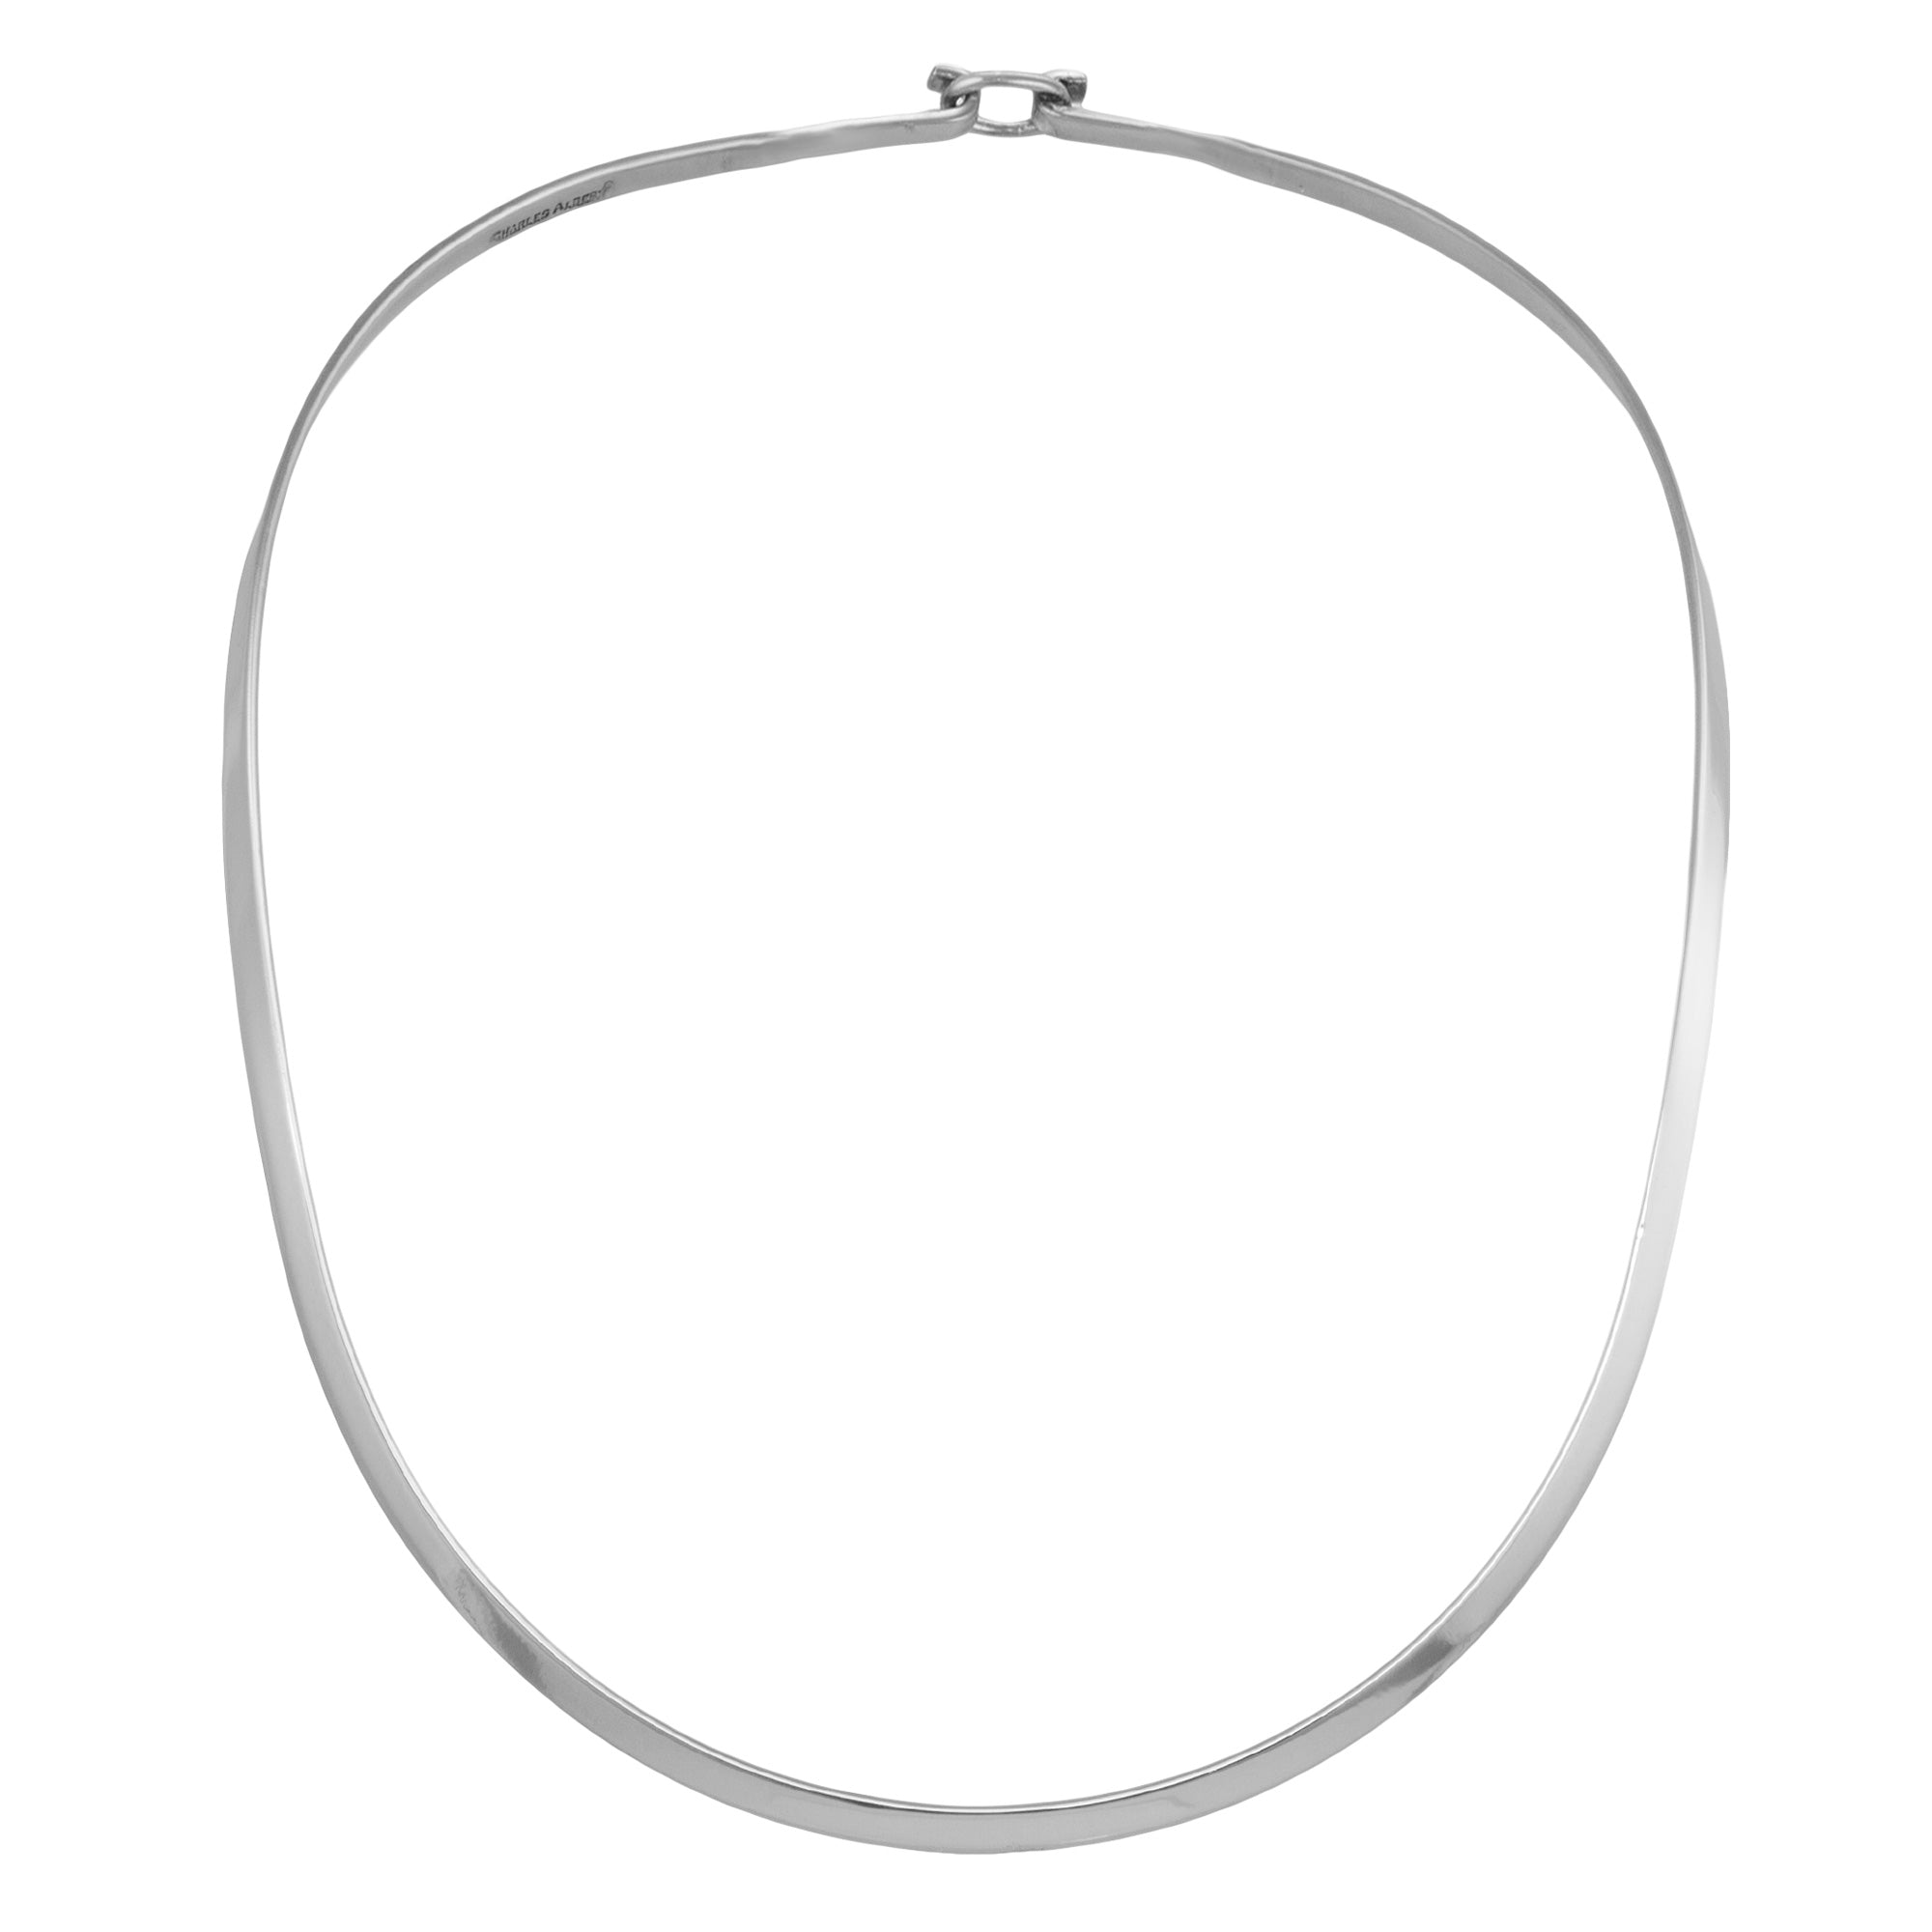 Silver Plated Oval Neckwire with Clasp | Charles Albert Jewelry